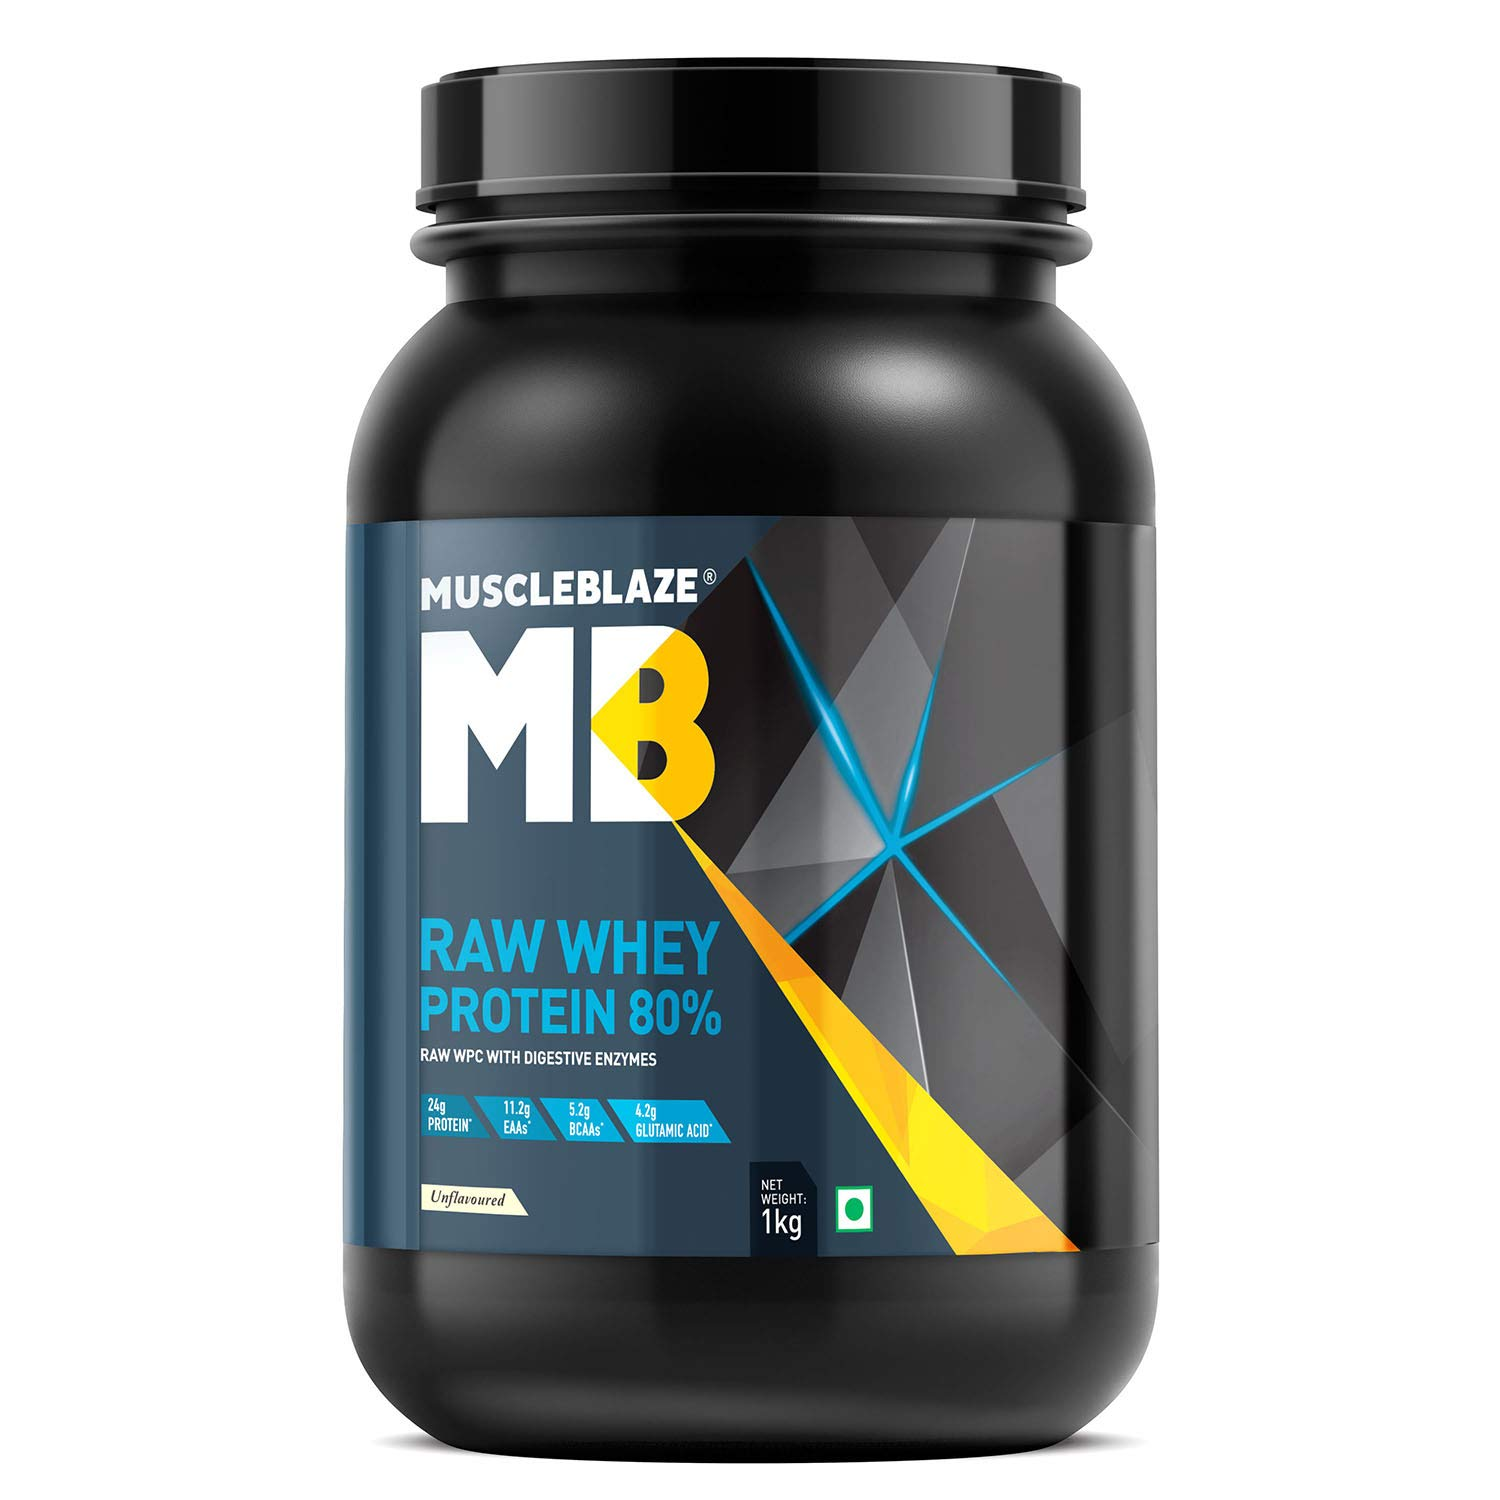 MuscleBlaze Raw Whey Protein Concentrate 80% with added